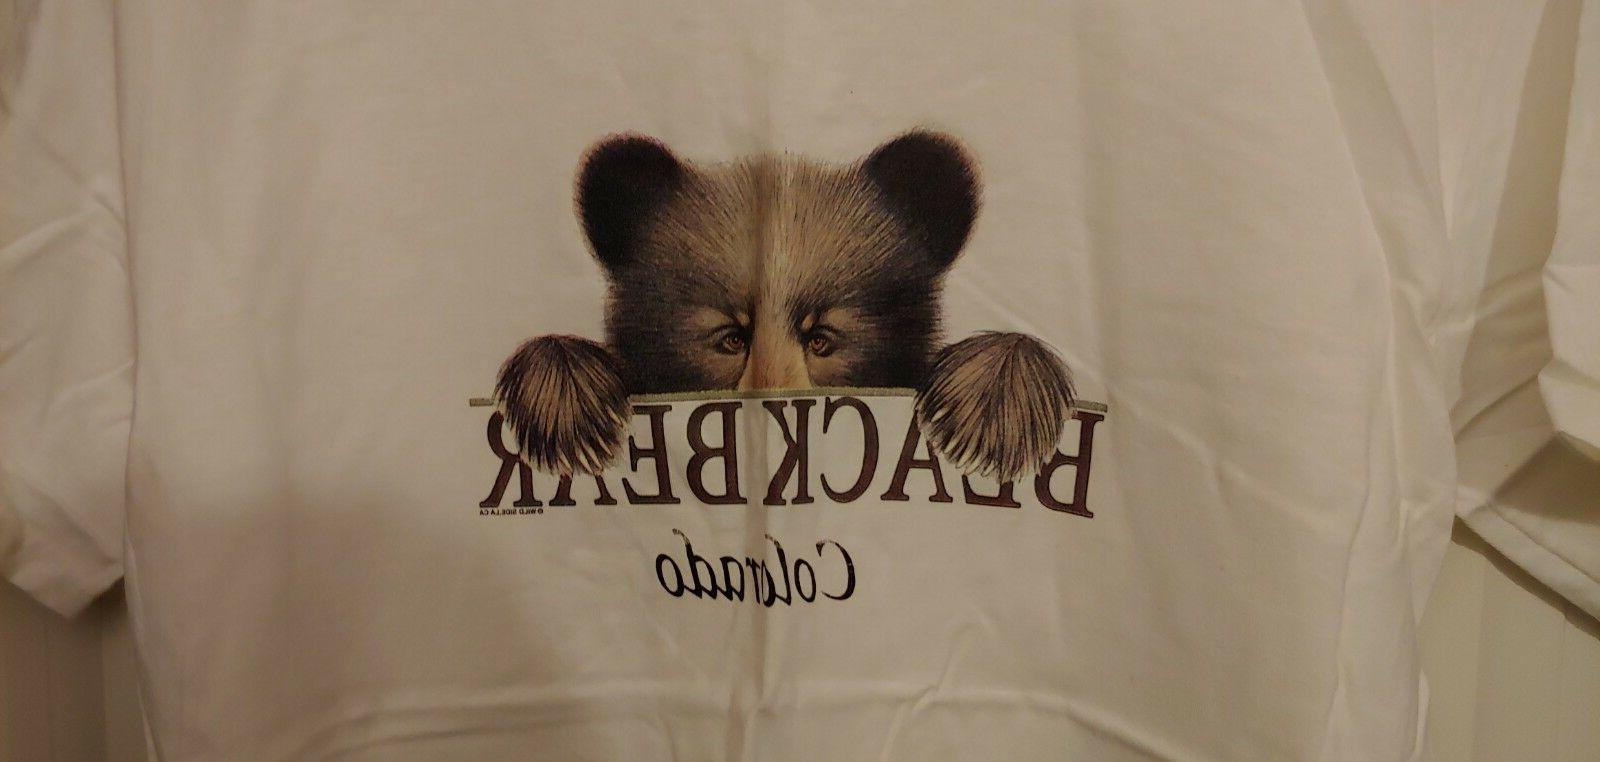 Alamosa Colorado graphic BEAR Girls Youth size 14/16 In